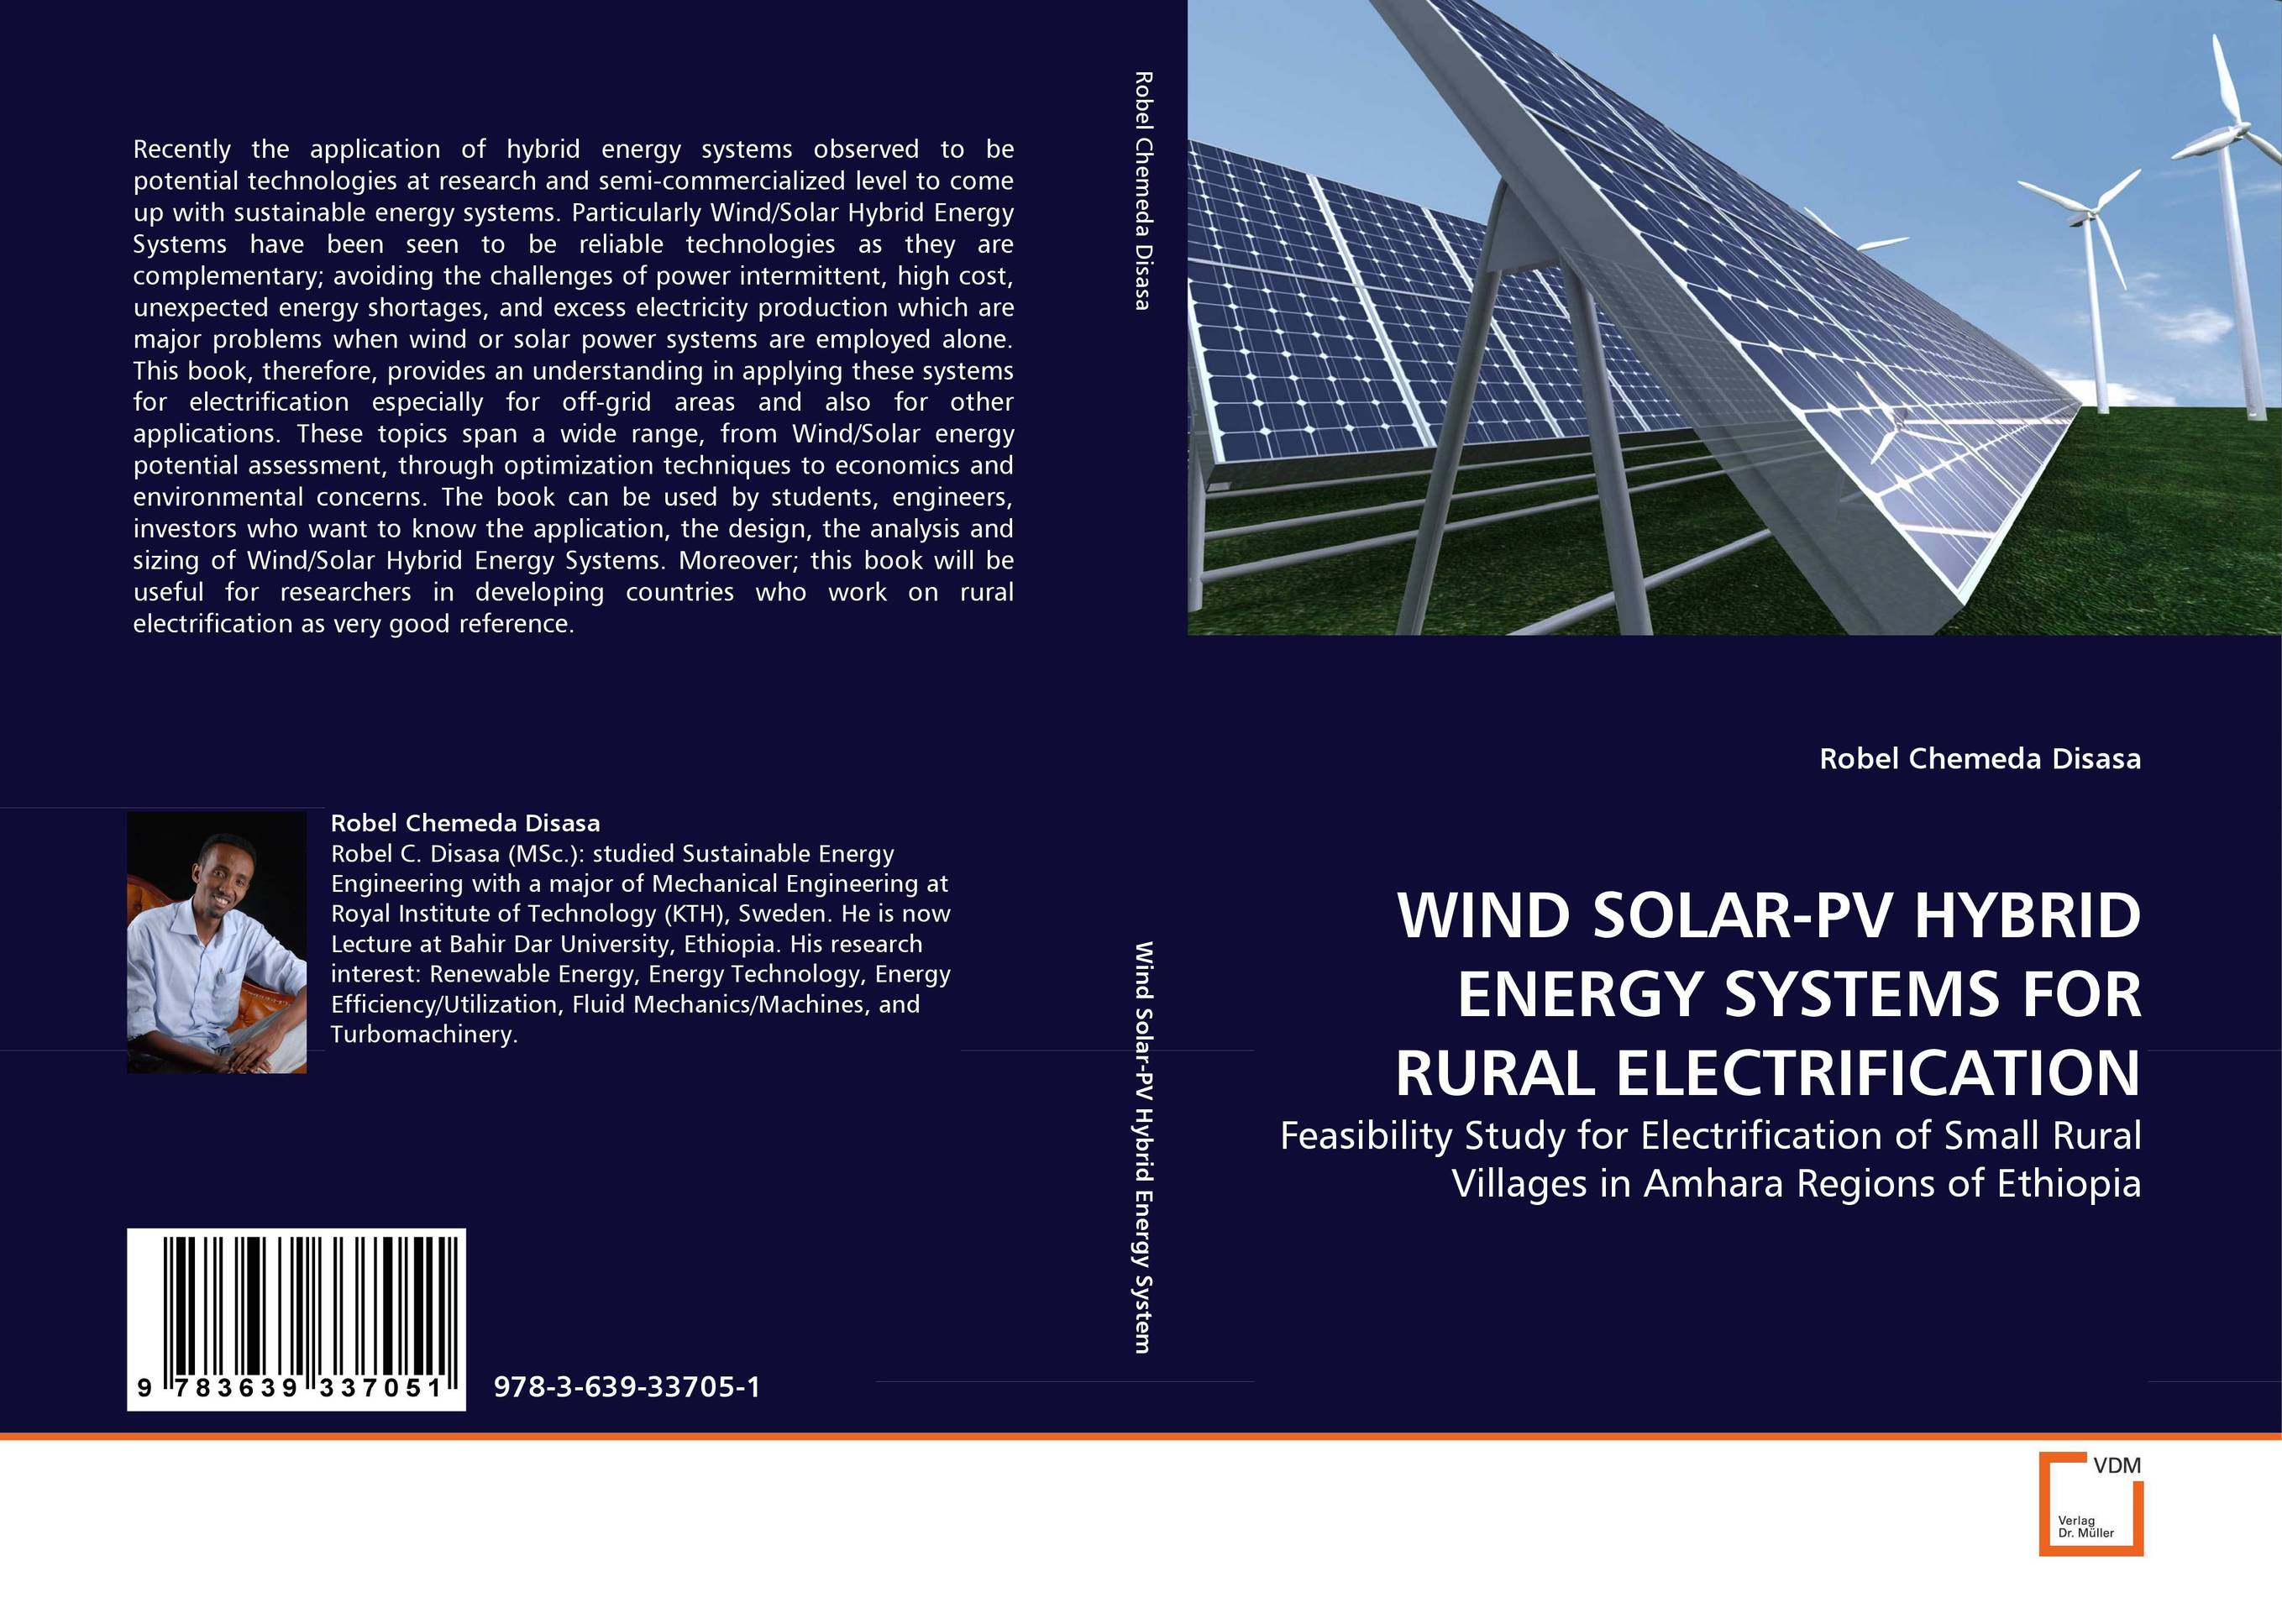 WIND SOLAR-PV HYBRID ENERGY SYSTEMS FOR RURAL ELECTRIFICATION